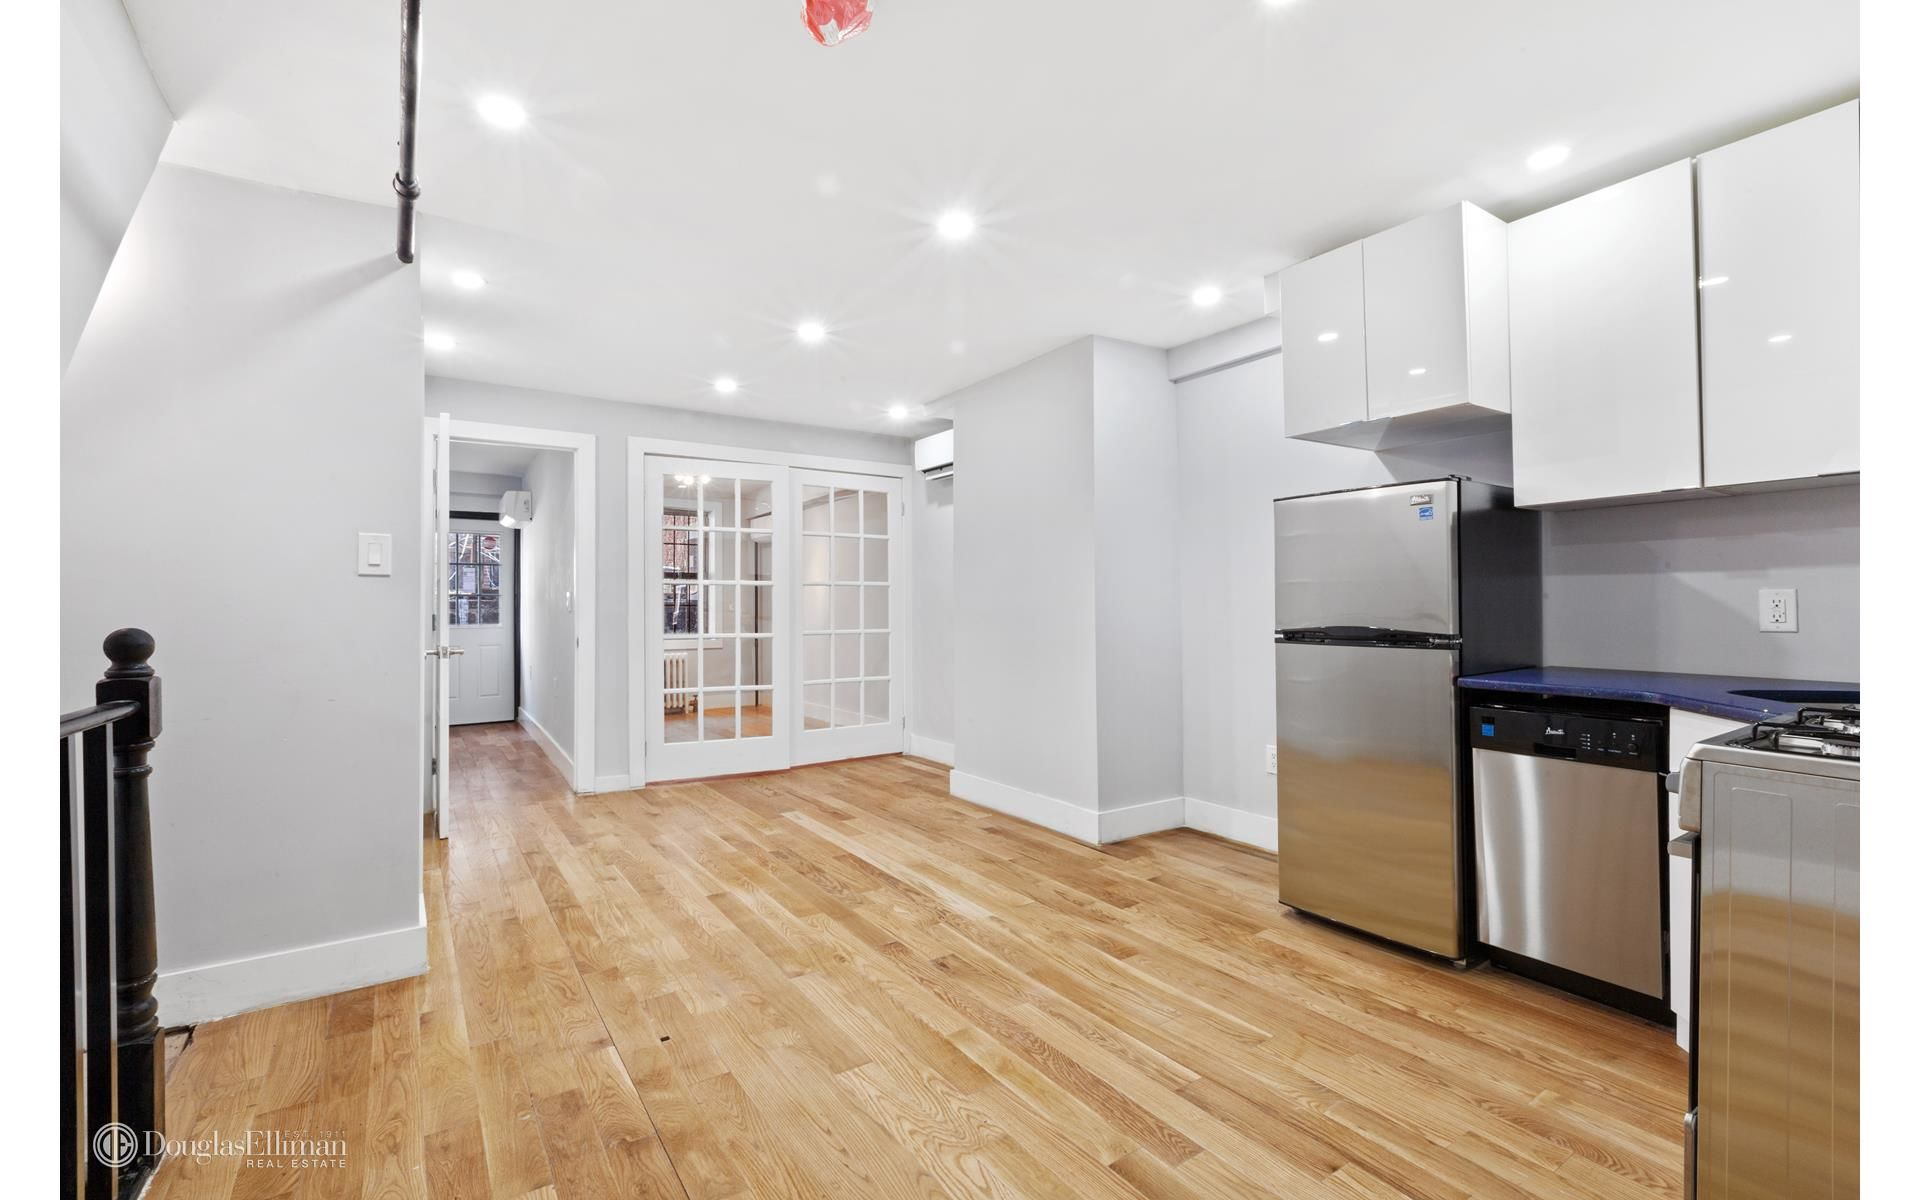 299 Vanderbilt Ave Photo 11 - ELLIMAN-2558258